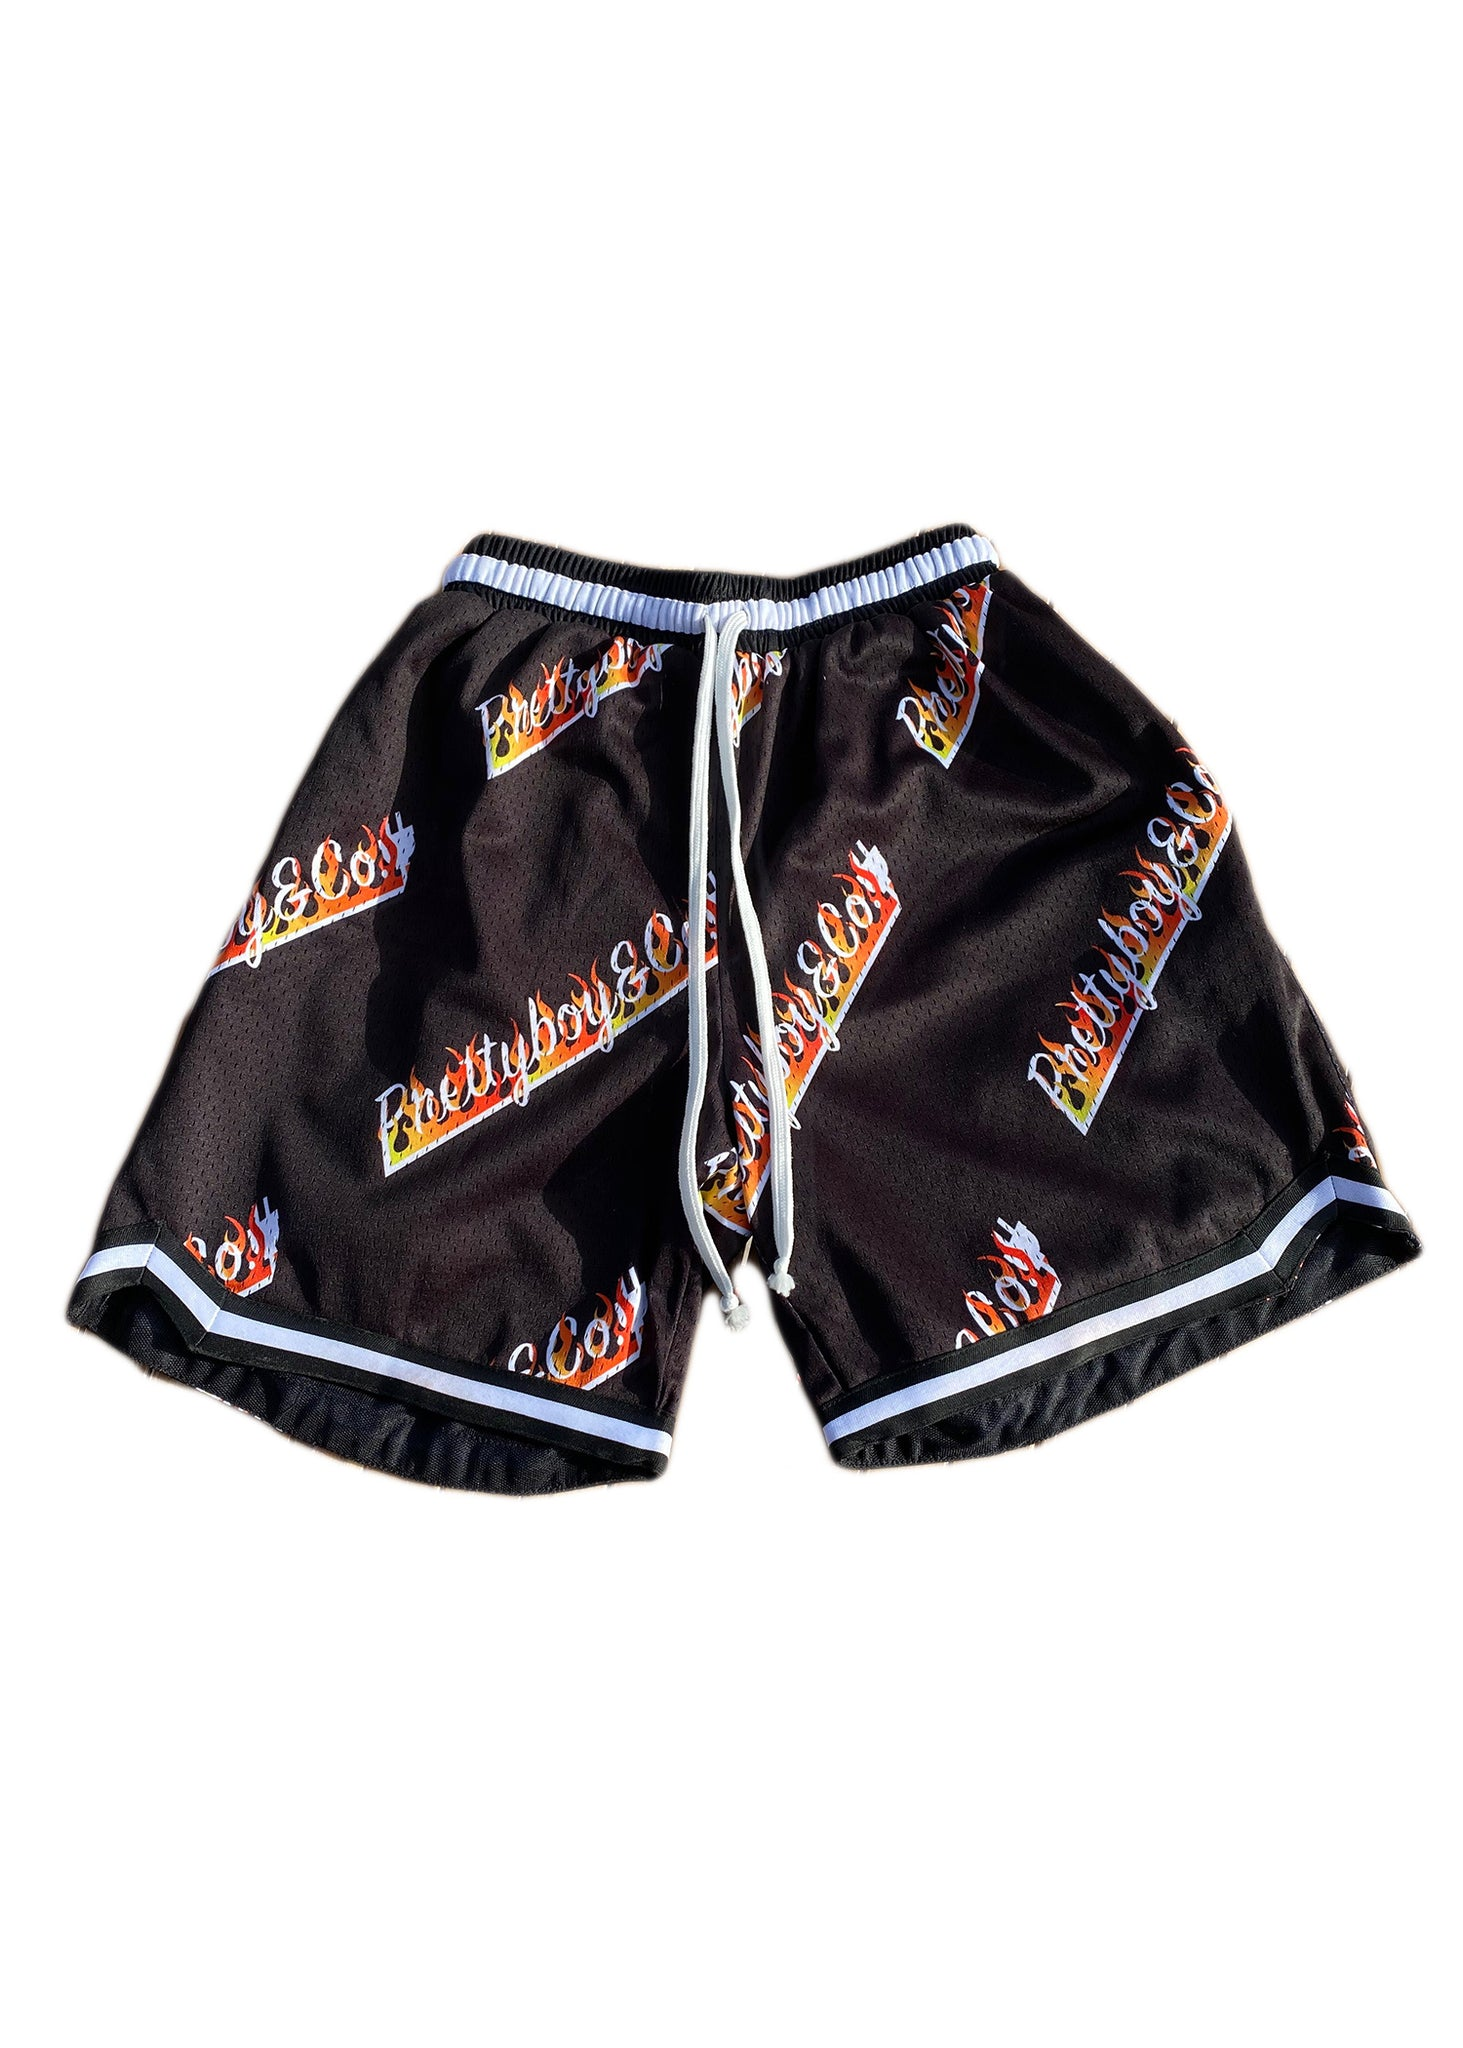 All Over Flames Shorts (Quickstrike)